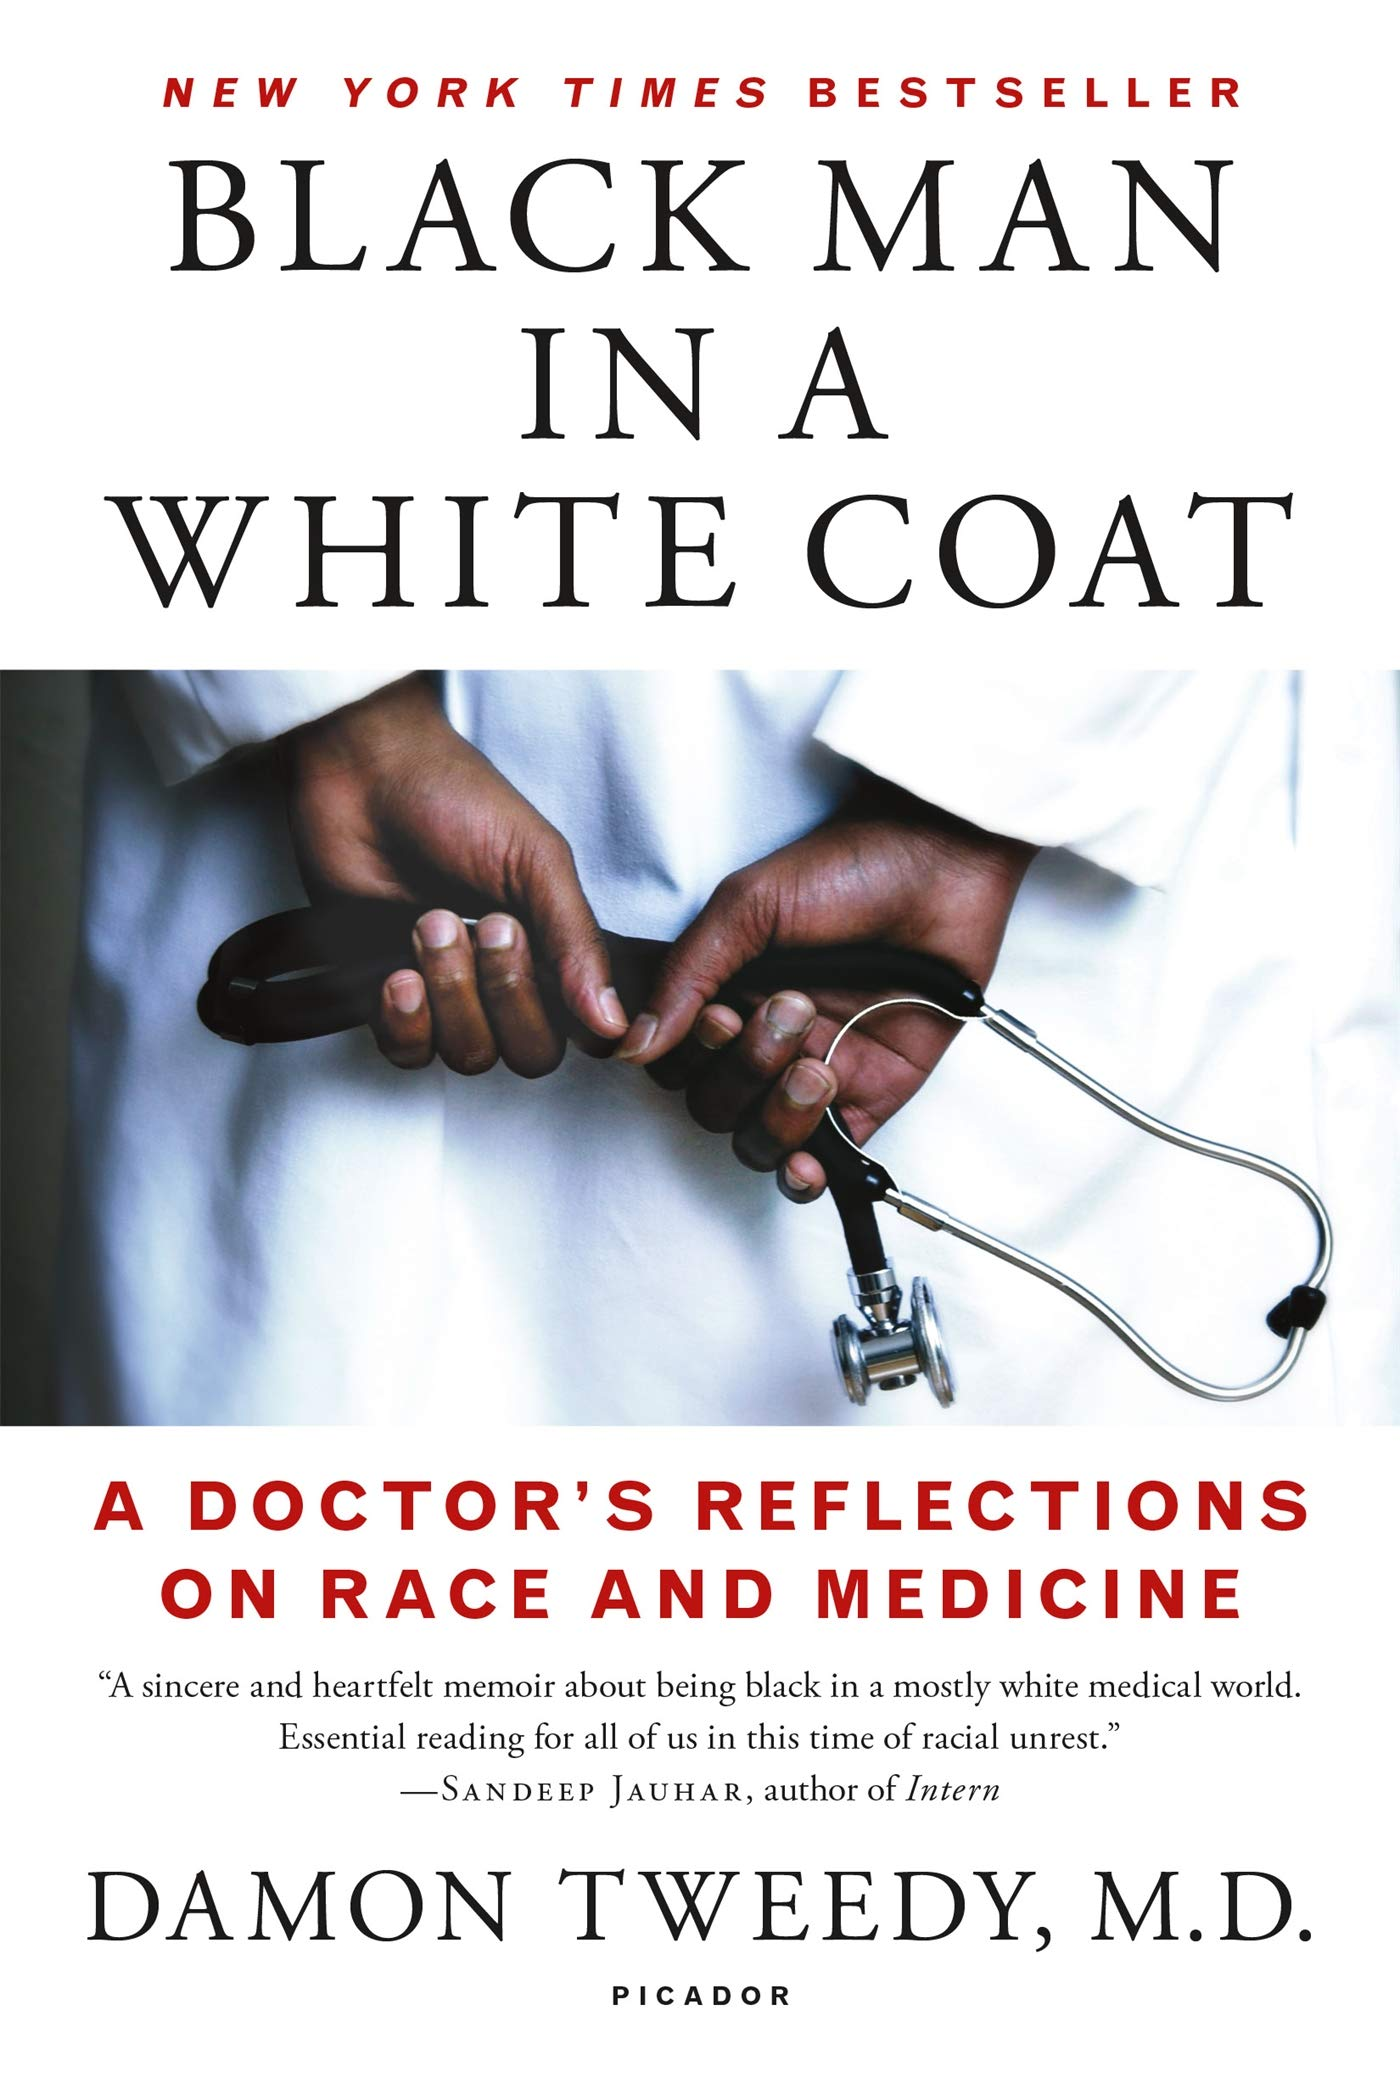 Black Man in a White Coat.jpg